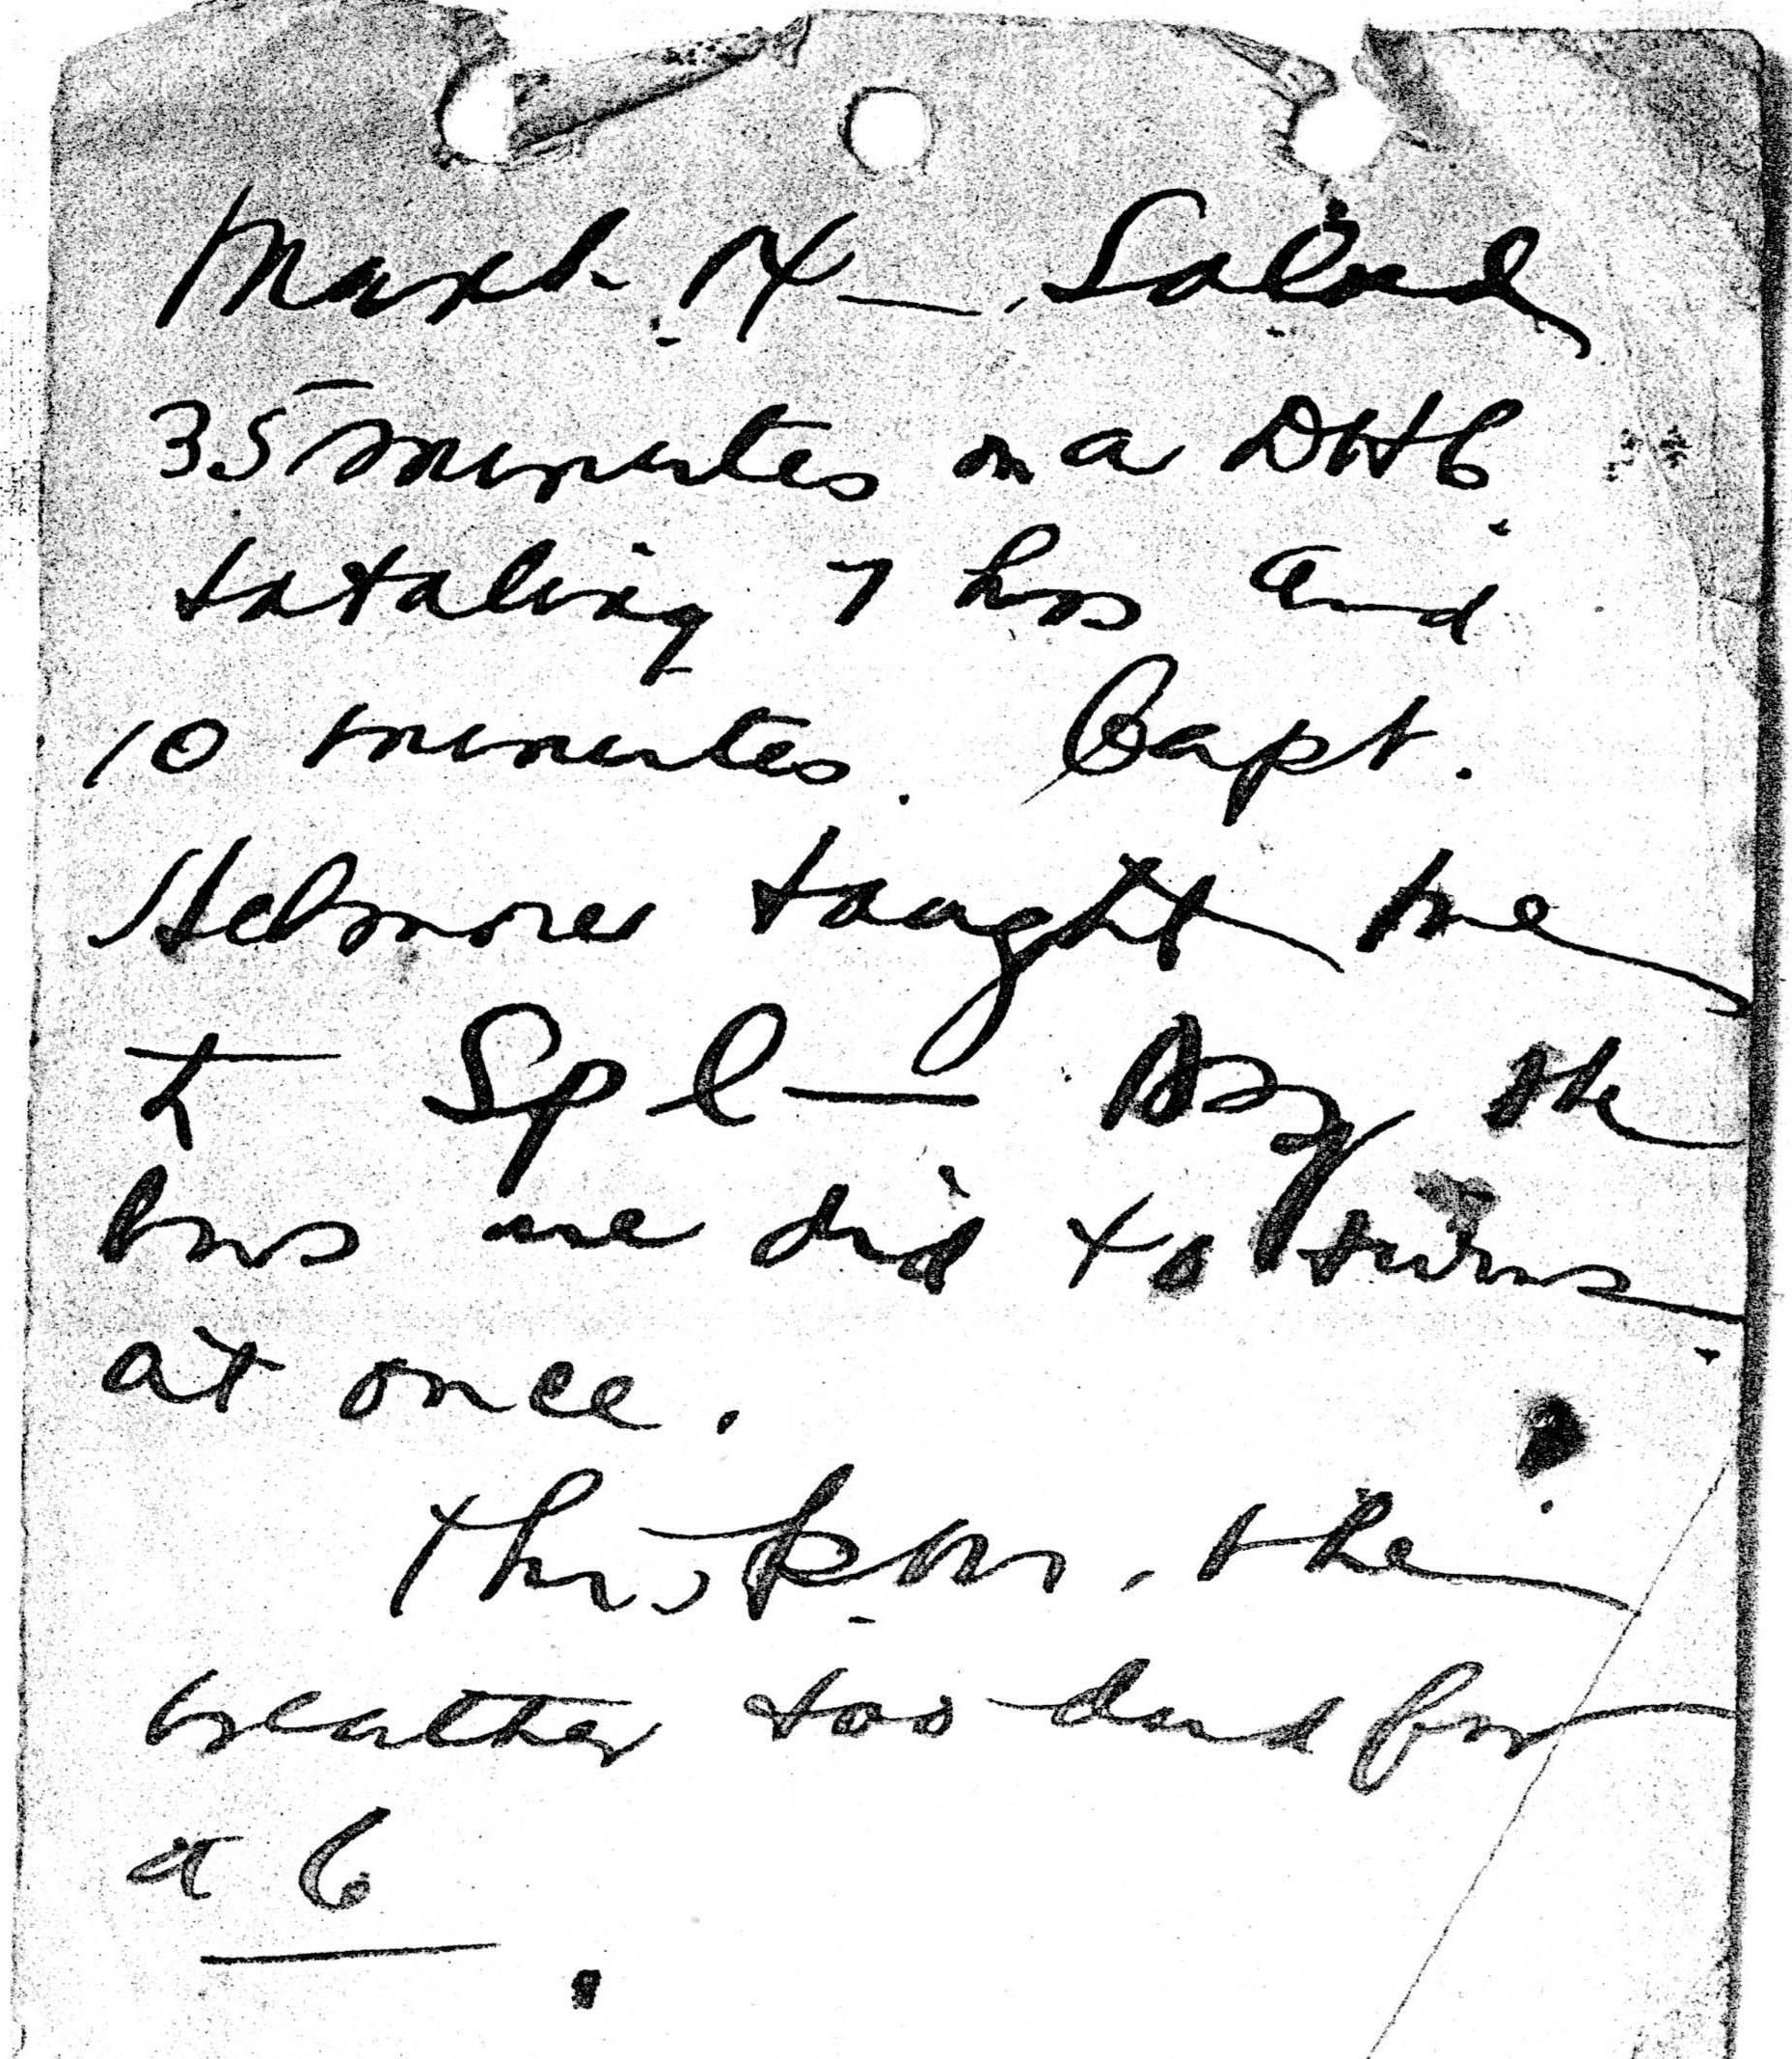 A page from Foss's diary dated March 13.